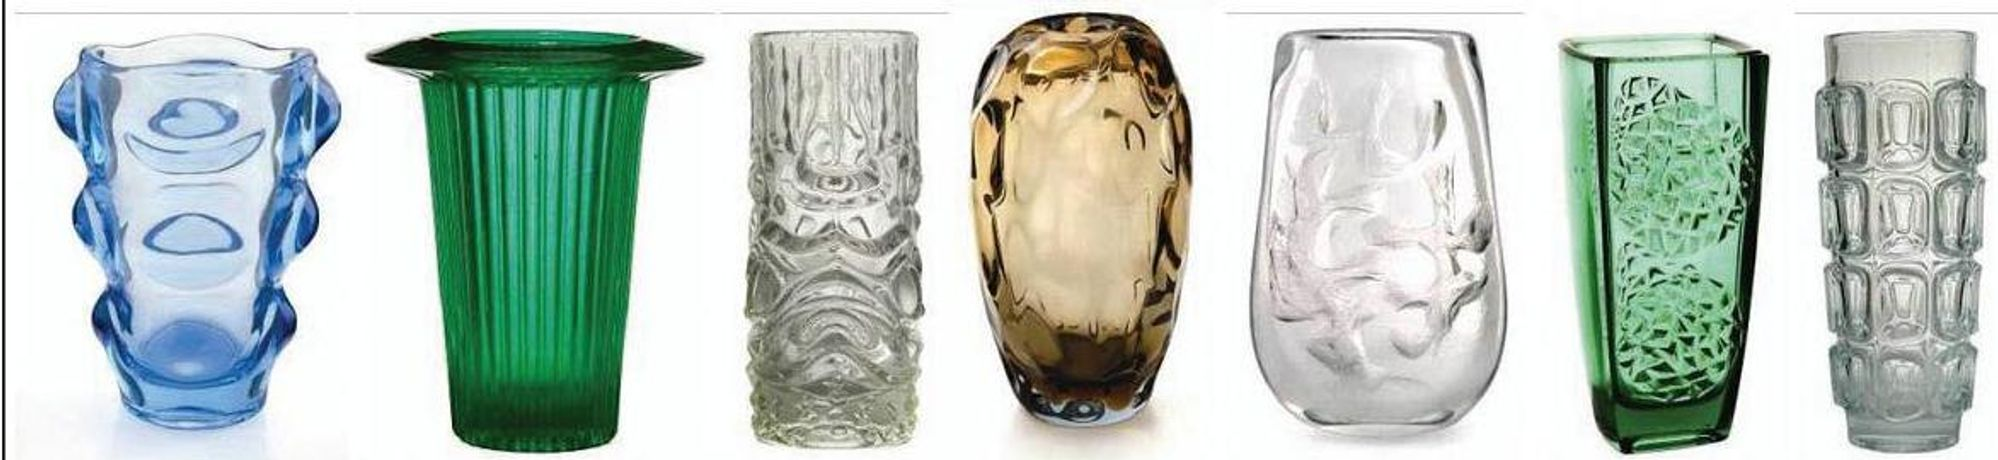 Hi Sklo Lo Sklo - From Masterpiece to Mass Produced   Post War Czechoslovakian Glass from The Graham Cooley Collection: Image 0